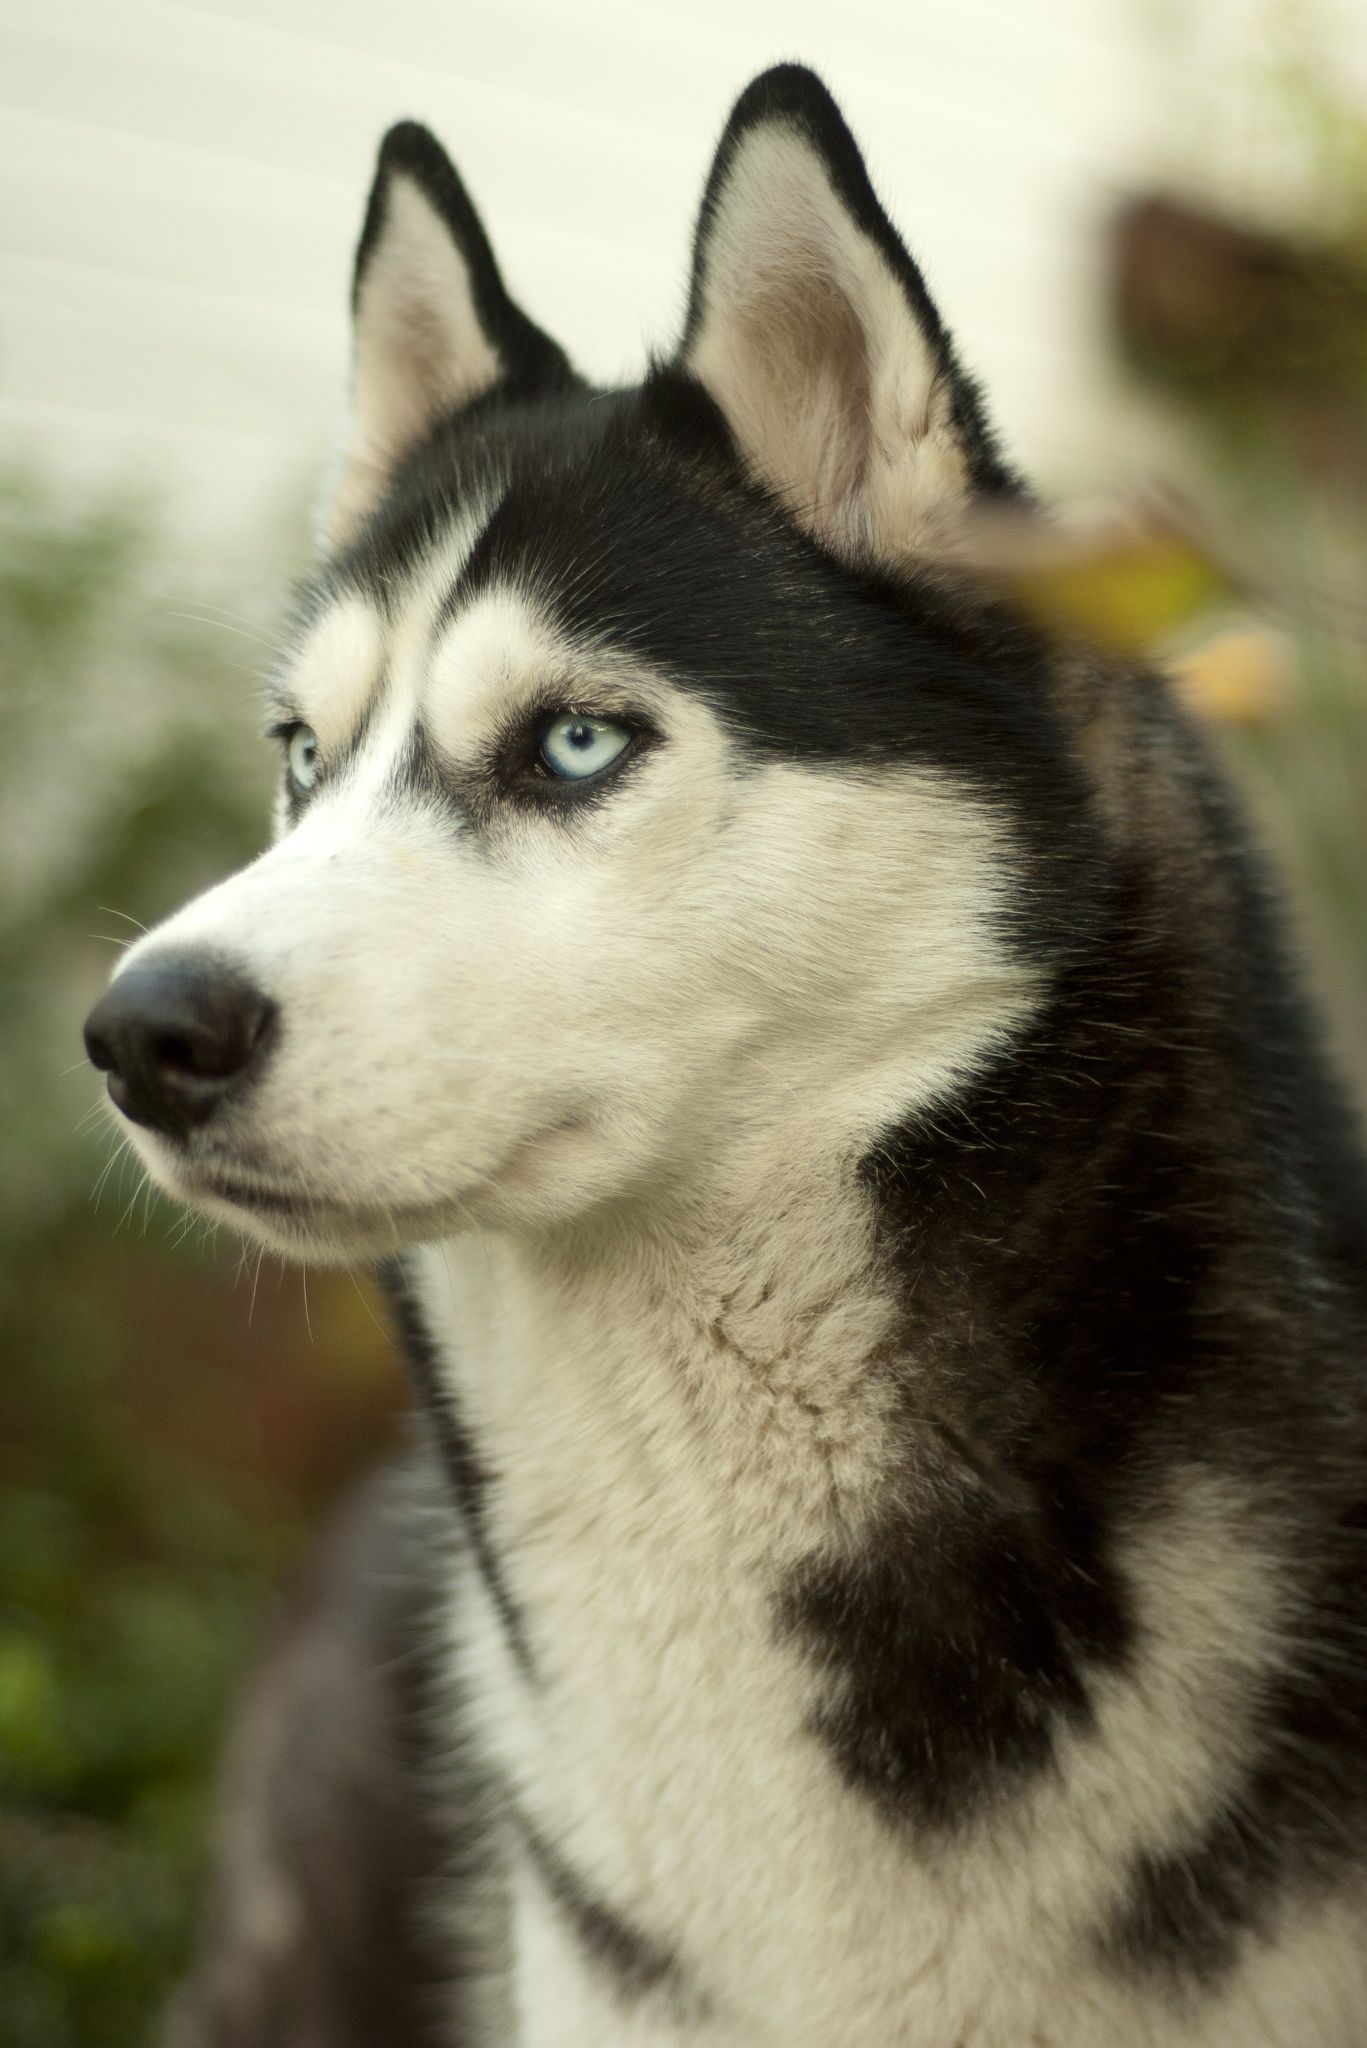 Pin by vincent porrazzo on Siberian Huskies Husky dogs